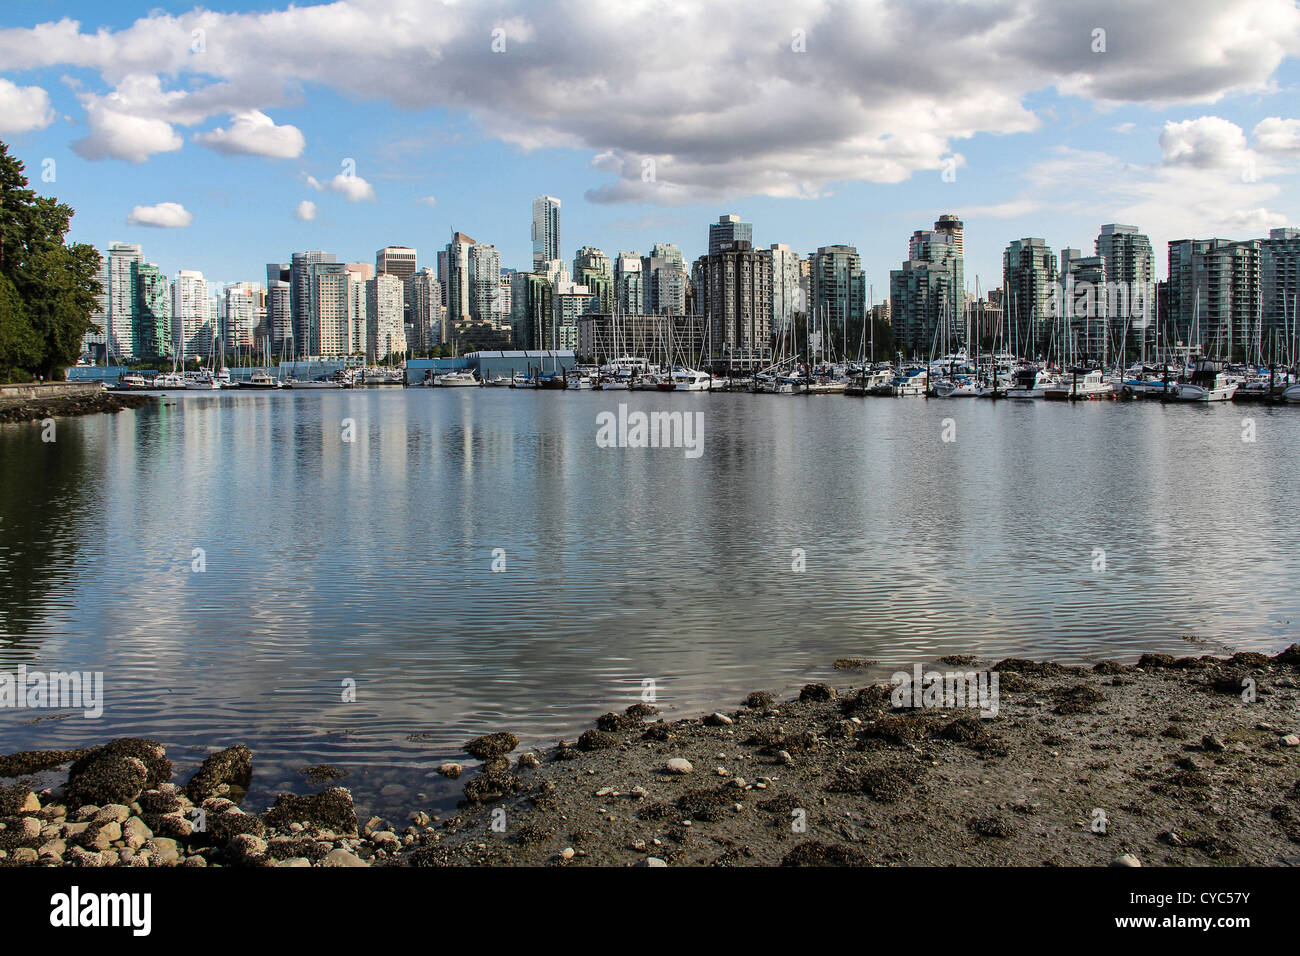 Downtown Vancouver viewed over the harbour from Stanley Park - Stock Image